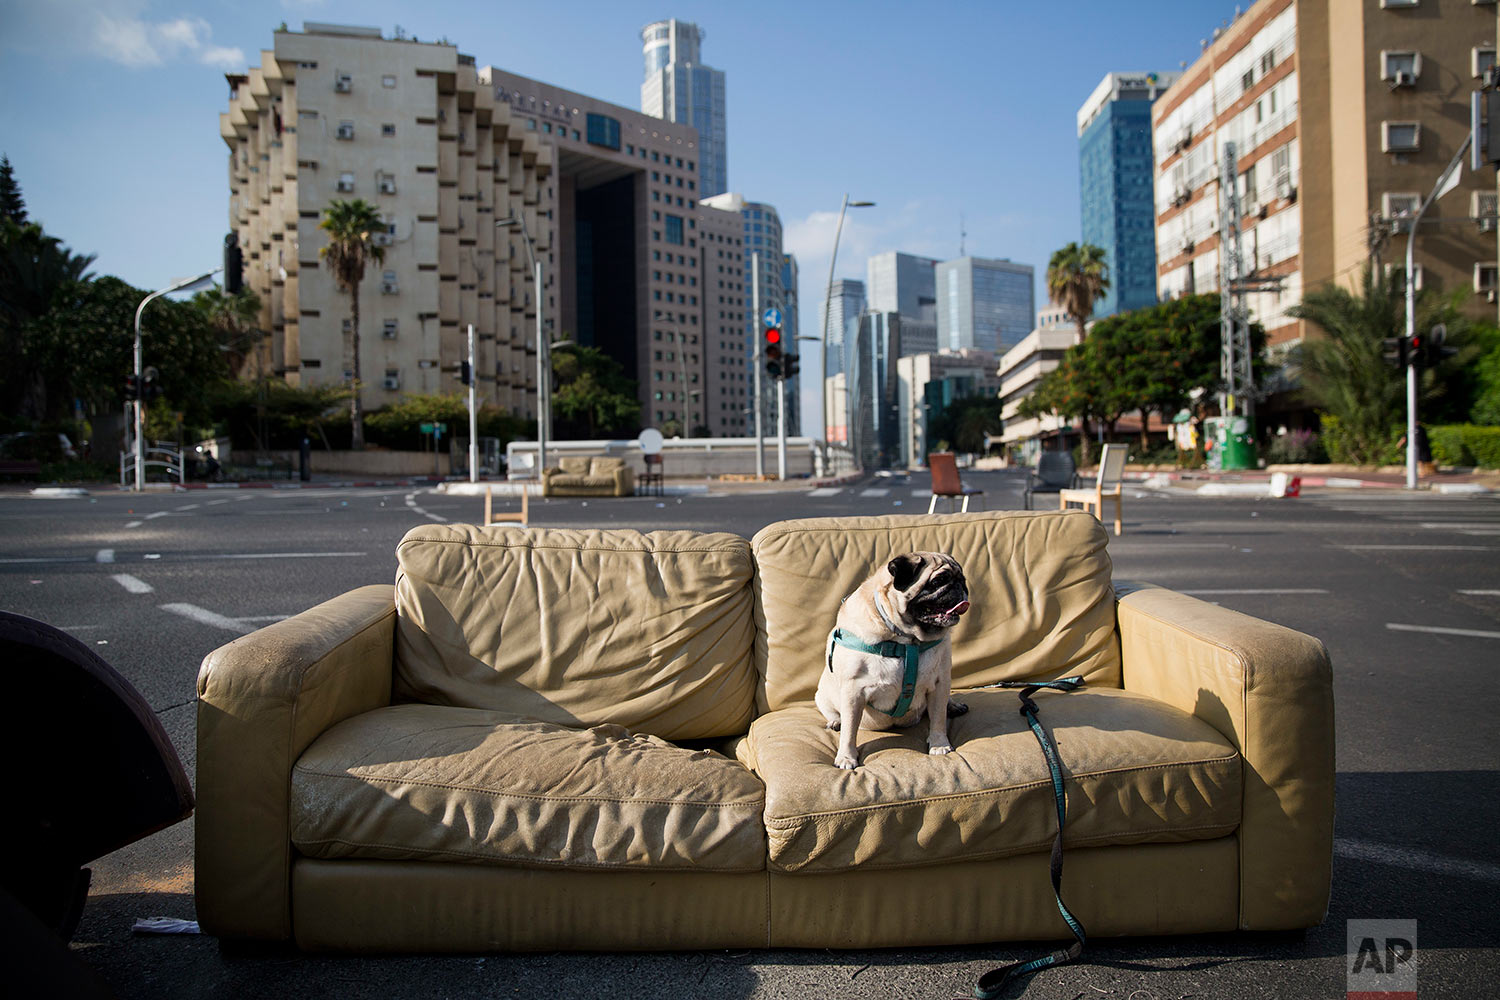 A dog sits on a sofa that has been placed on a car-free street during the Jewish holiday of Yom Kippur in Ramat Gan, Israel, Saturday, Sept. 30, 2017.(AP Photo/Oded Balilty)